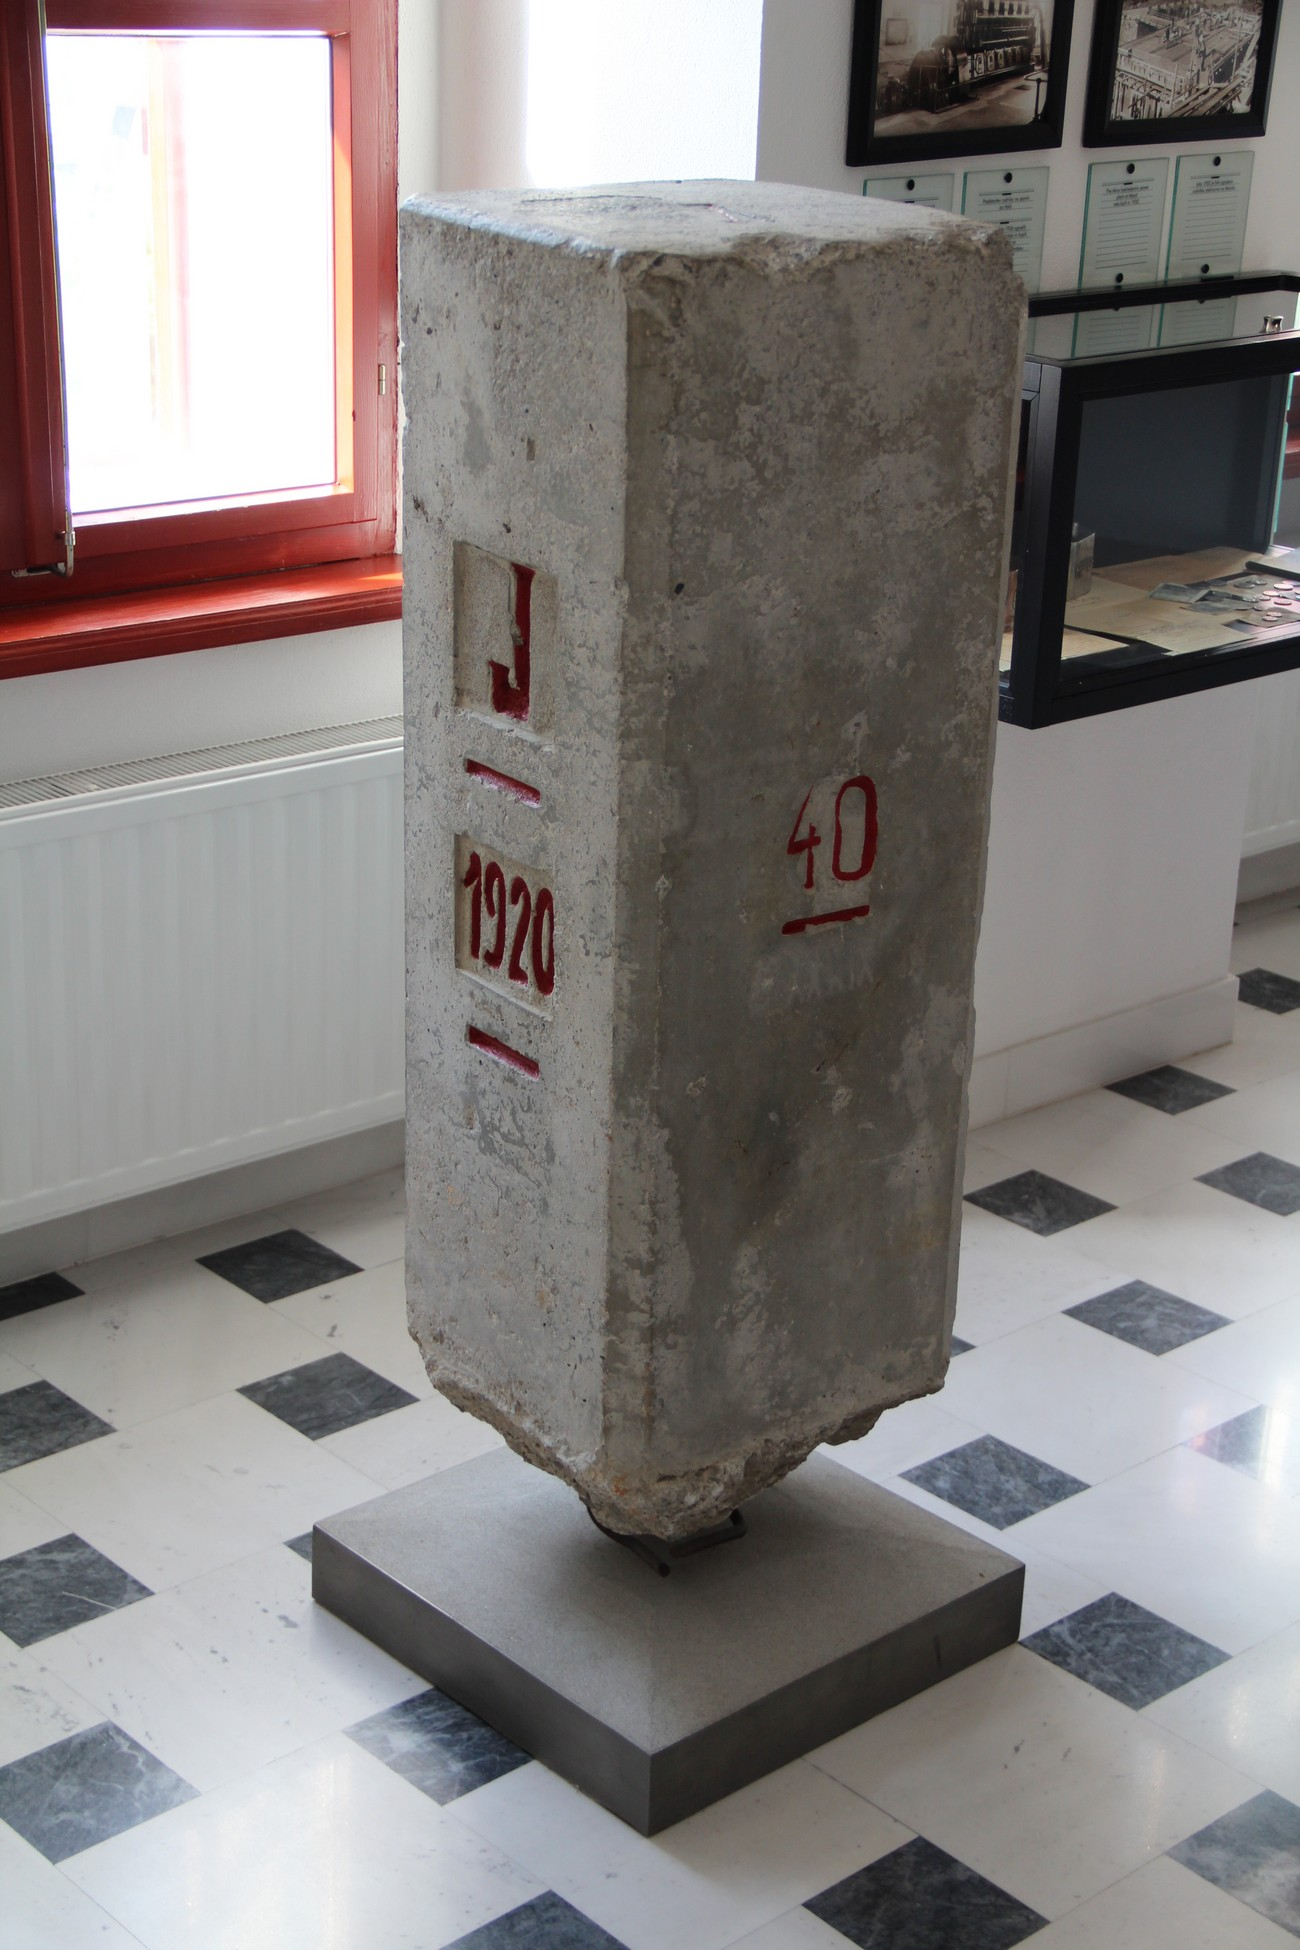 During World War II, boundary marker No. 40 of the Rapallo border in Spodnji Vrsnik became a tripoint marker between Germany, the Kingdom of Italy and the Province of Ljubljana, Italy's new occupation zone. Today this marker is kept by the museum Mestni muzej Idrija. Source: Idrija Municipal Museum, Author: Darko Viler.